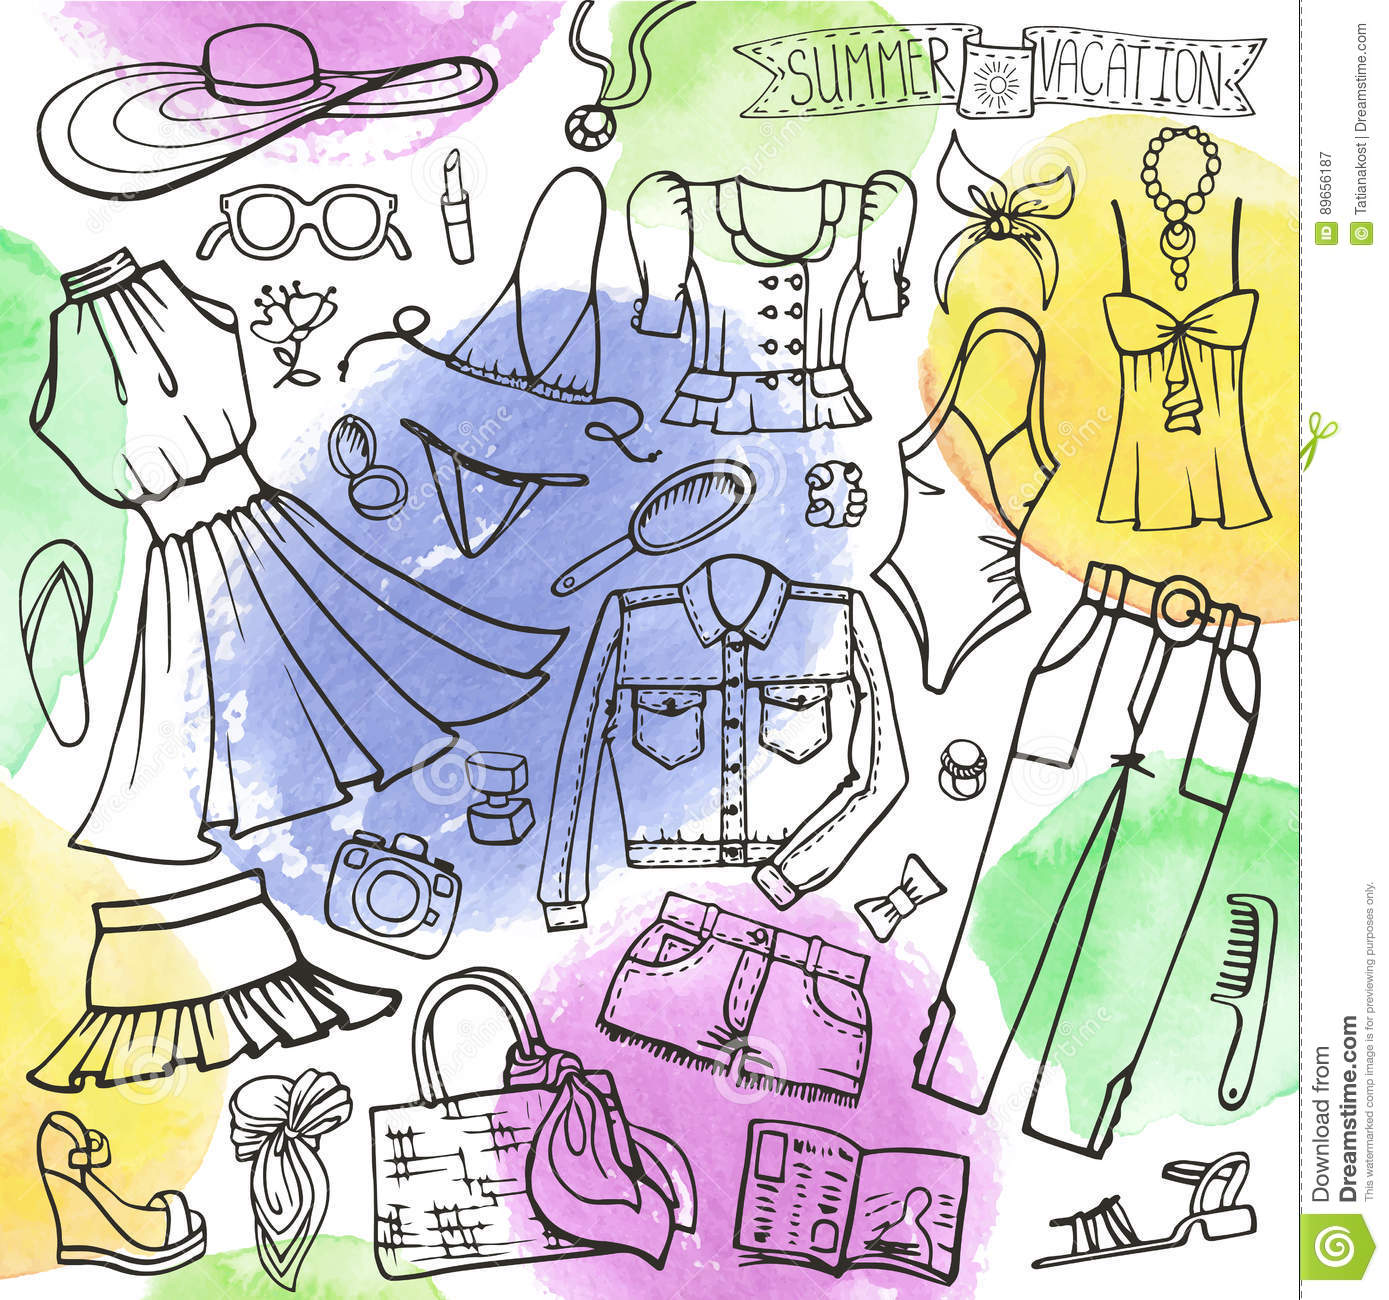 42b28a88a7ae Fashion illustration.Vector hand drawn fashionable women clothes and  accessories on white background. Summer vacation wear.Retro Sketches for  scrapbooking ...